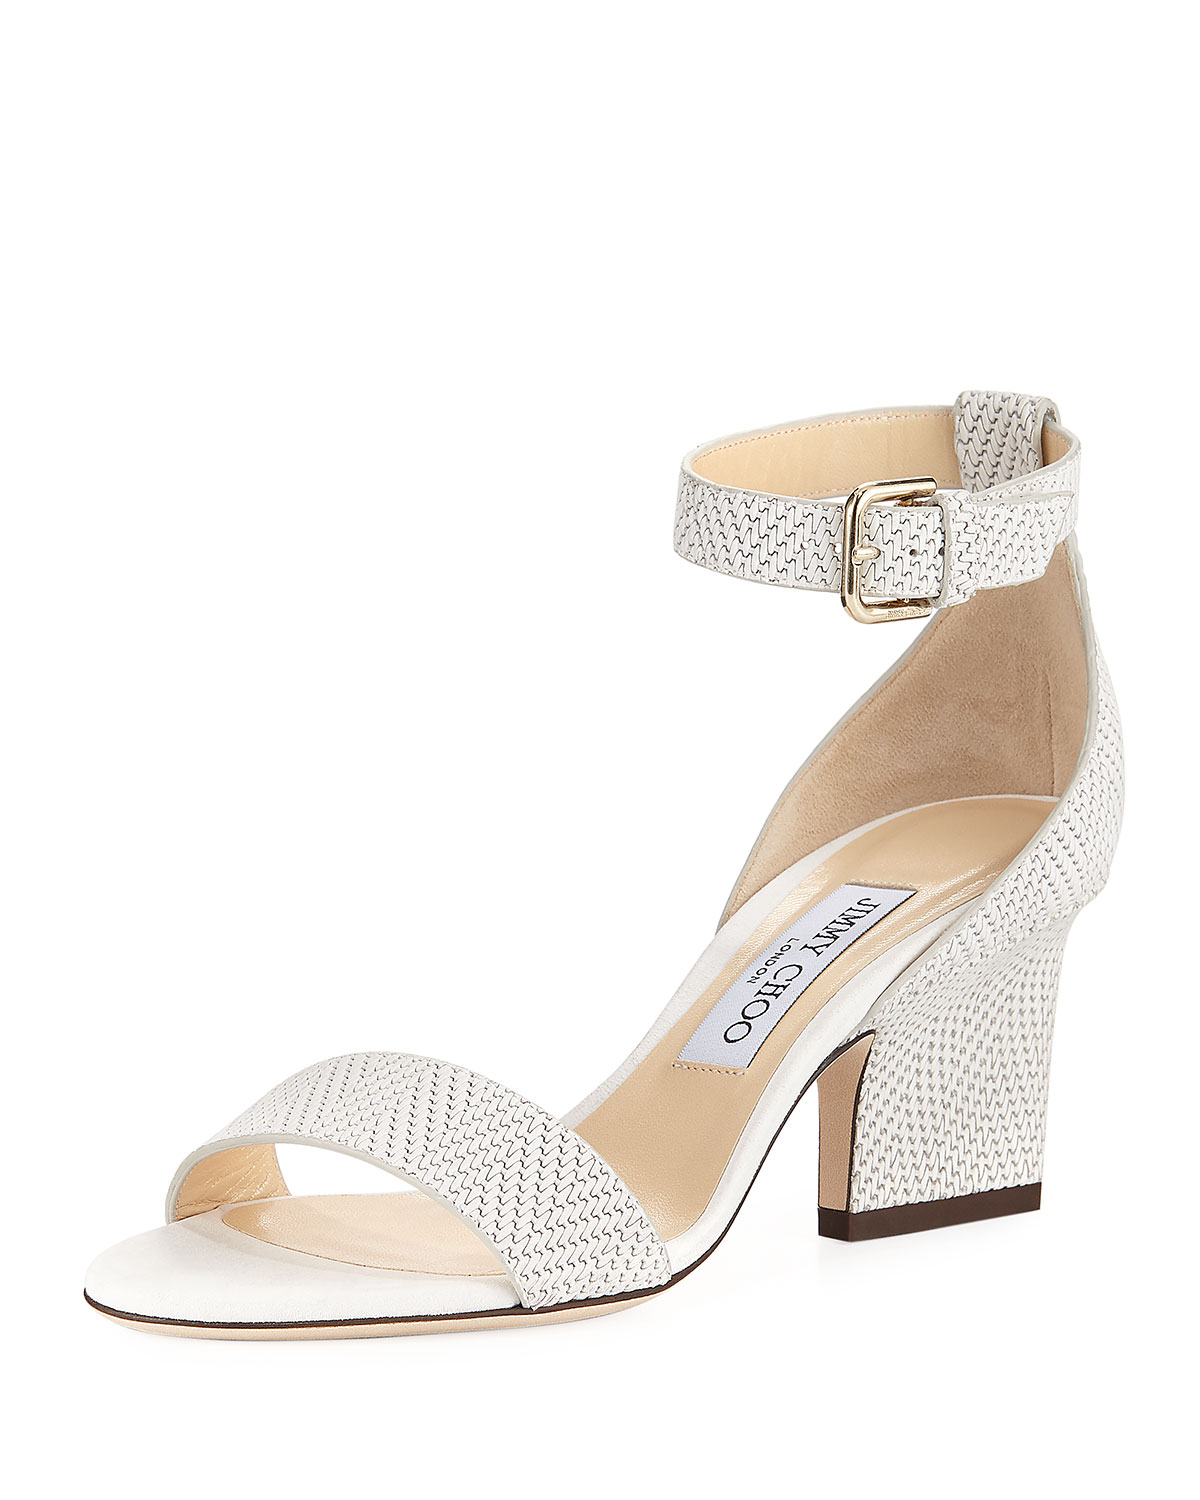 aec6b9f3ea6a Jimmy Choo Edina Textured Leather Ankle-Wrap Sandal